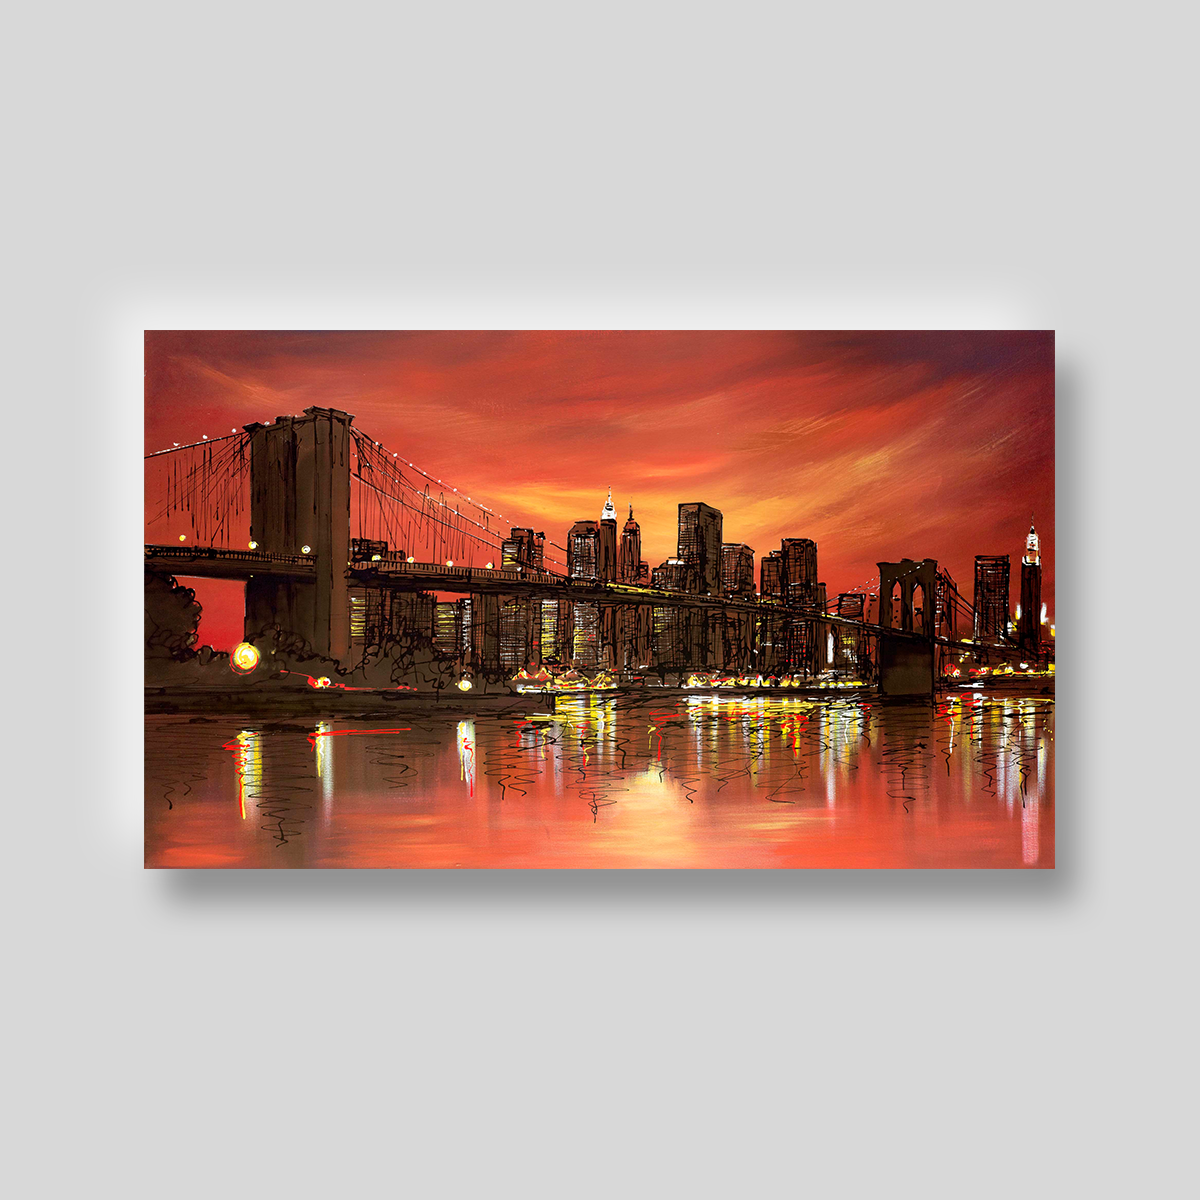 Hot City by Paul Kenton, UK contemporary cityscape artist, a limited edition print from his New York Collection